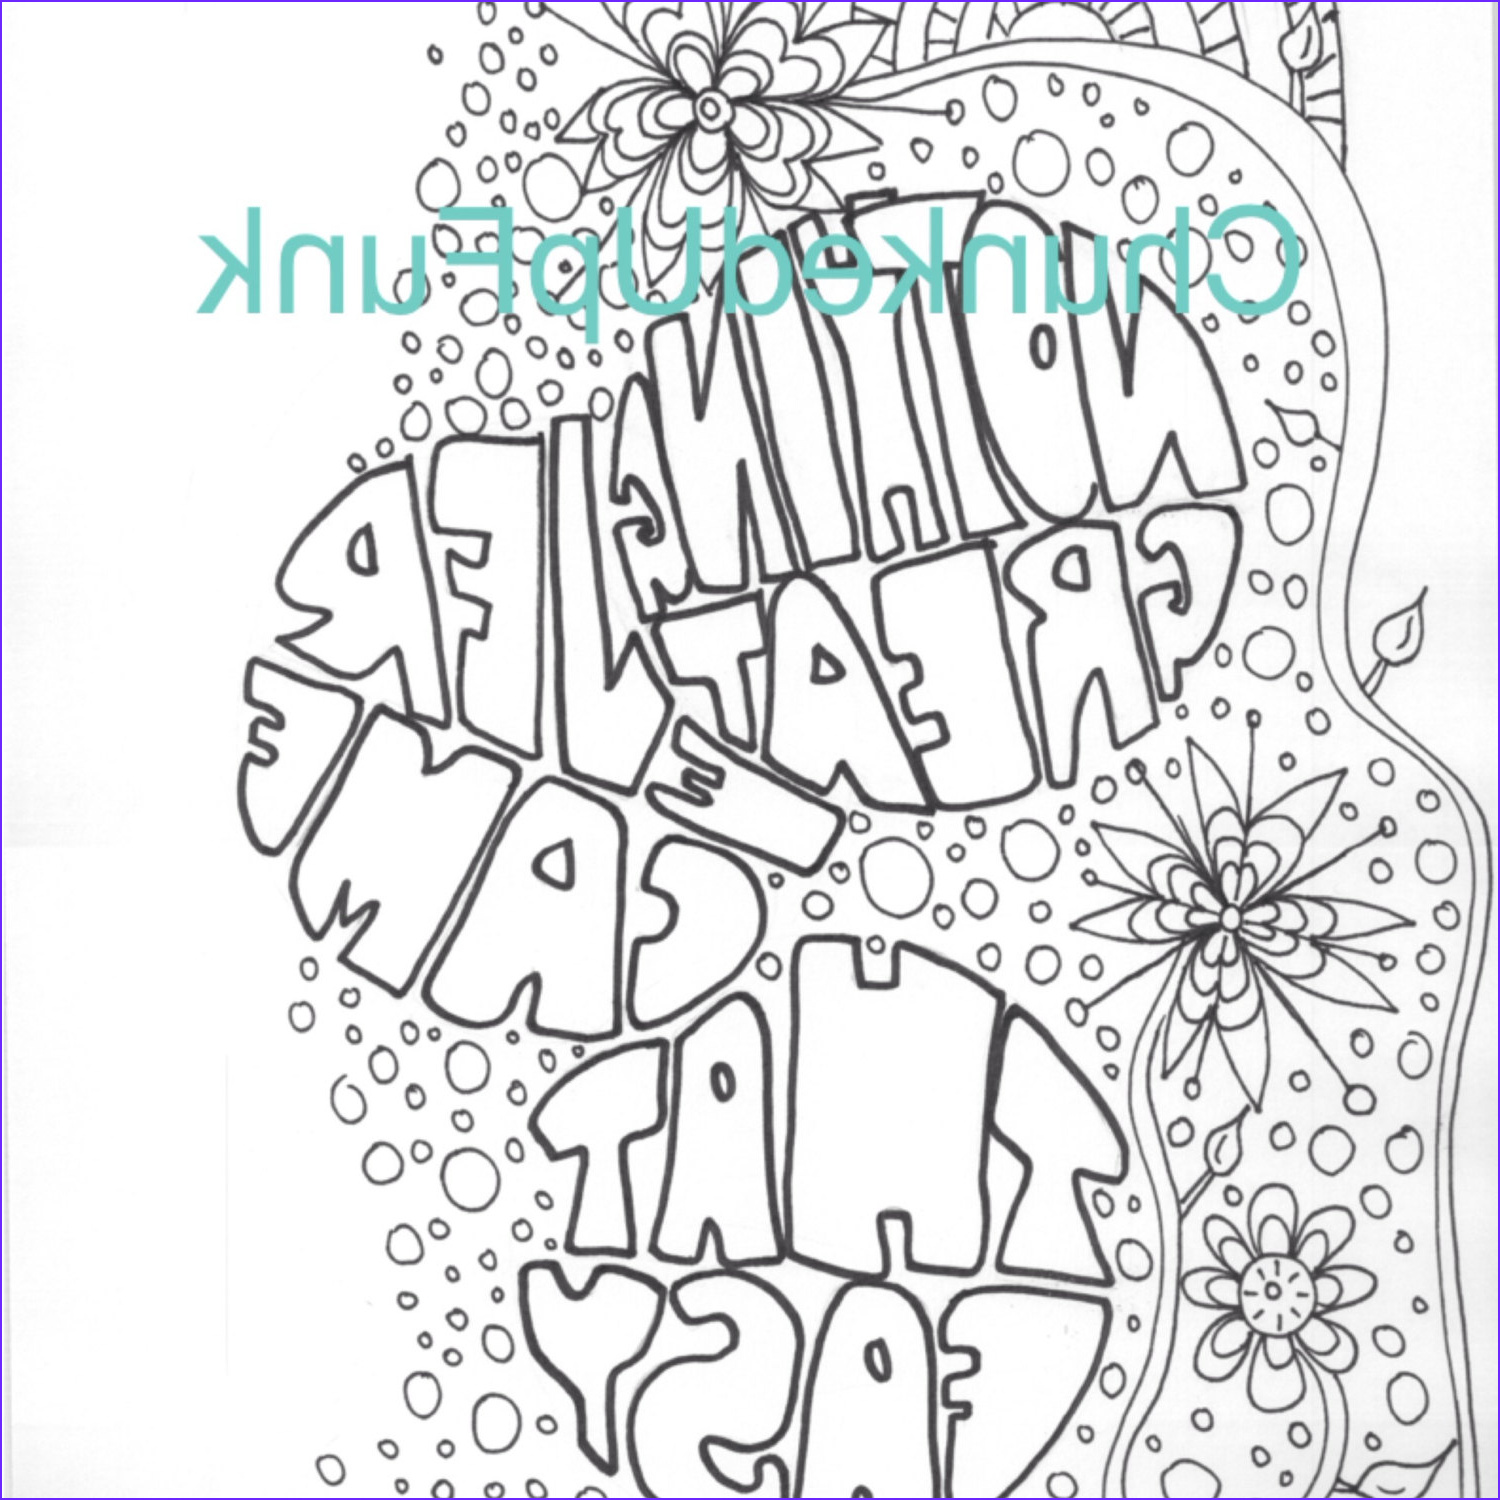 Printable Coloring Page Inspirational Art Motivational